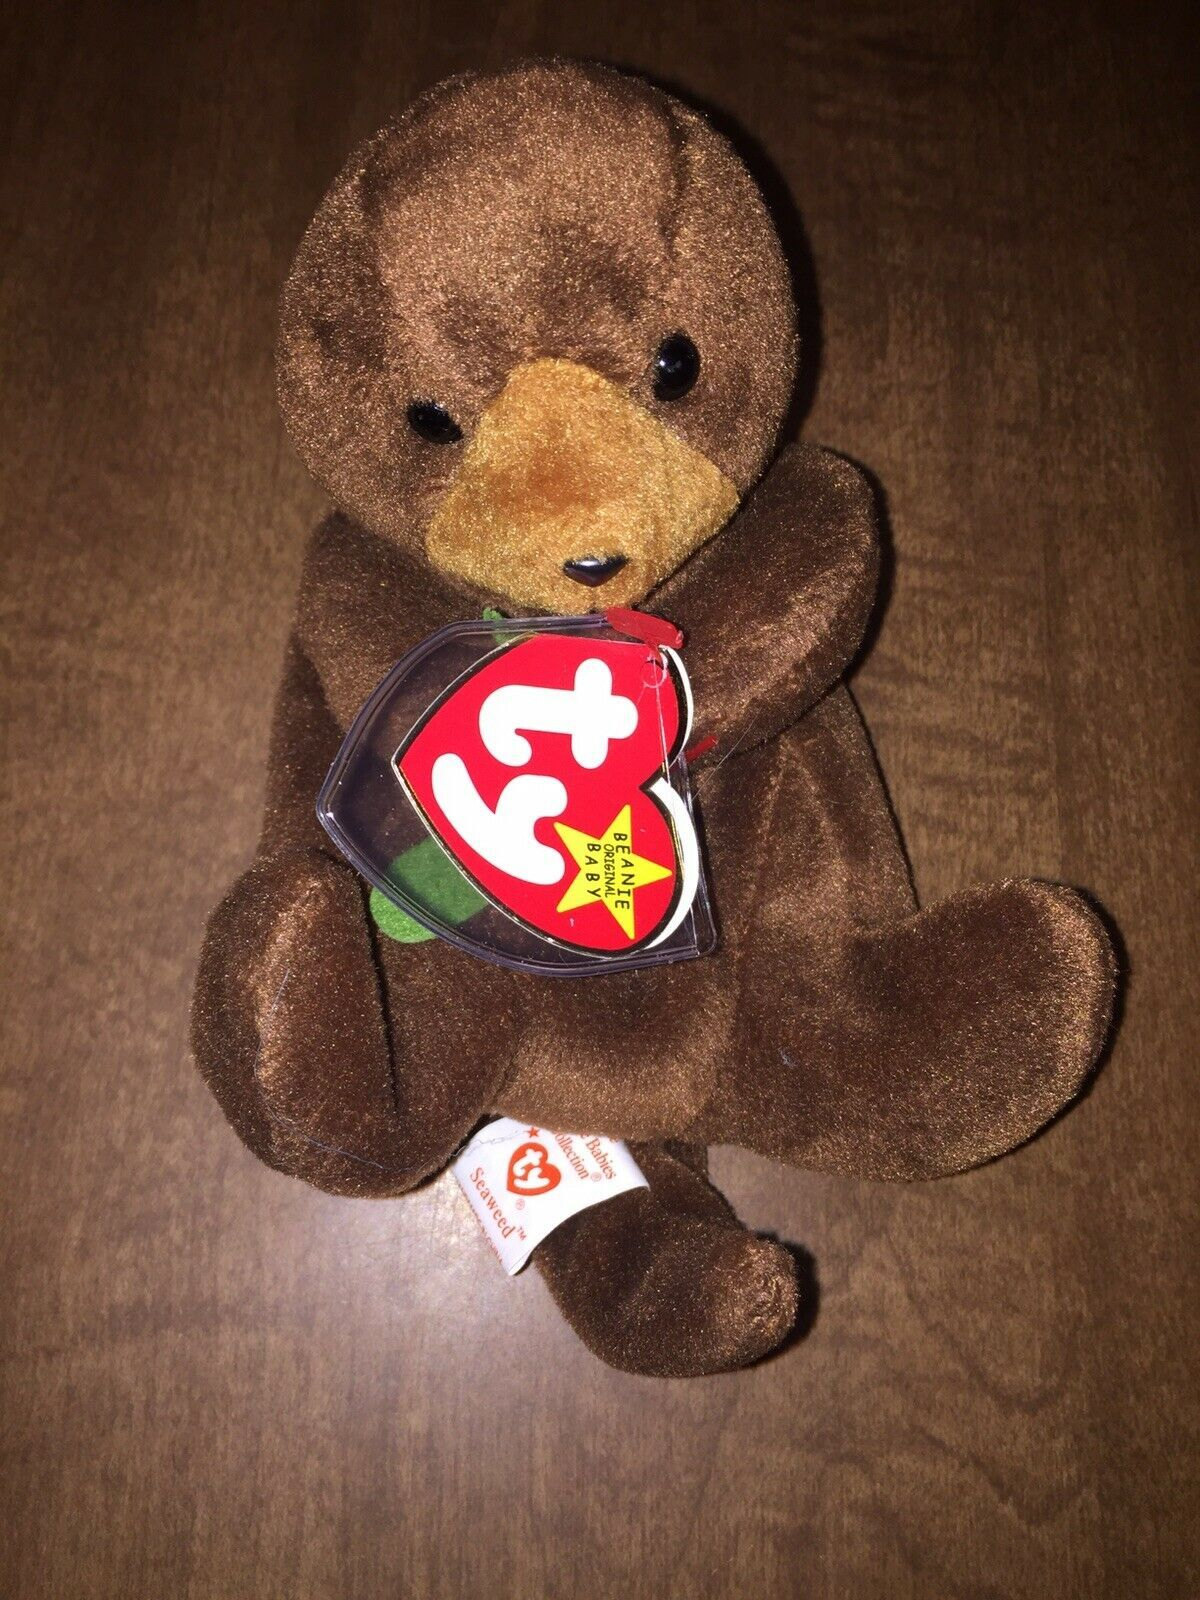 Primary image for Ty Seaweed Otter Beanie Baby 1995 Retired MWMT